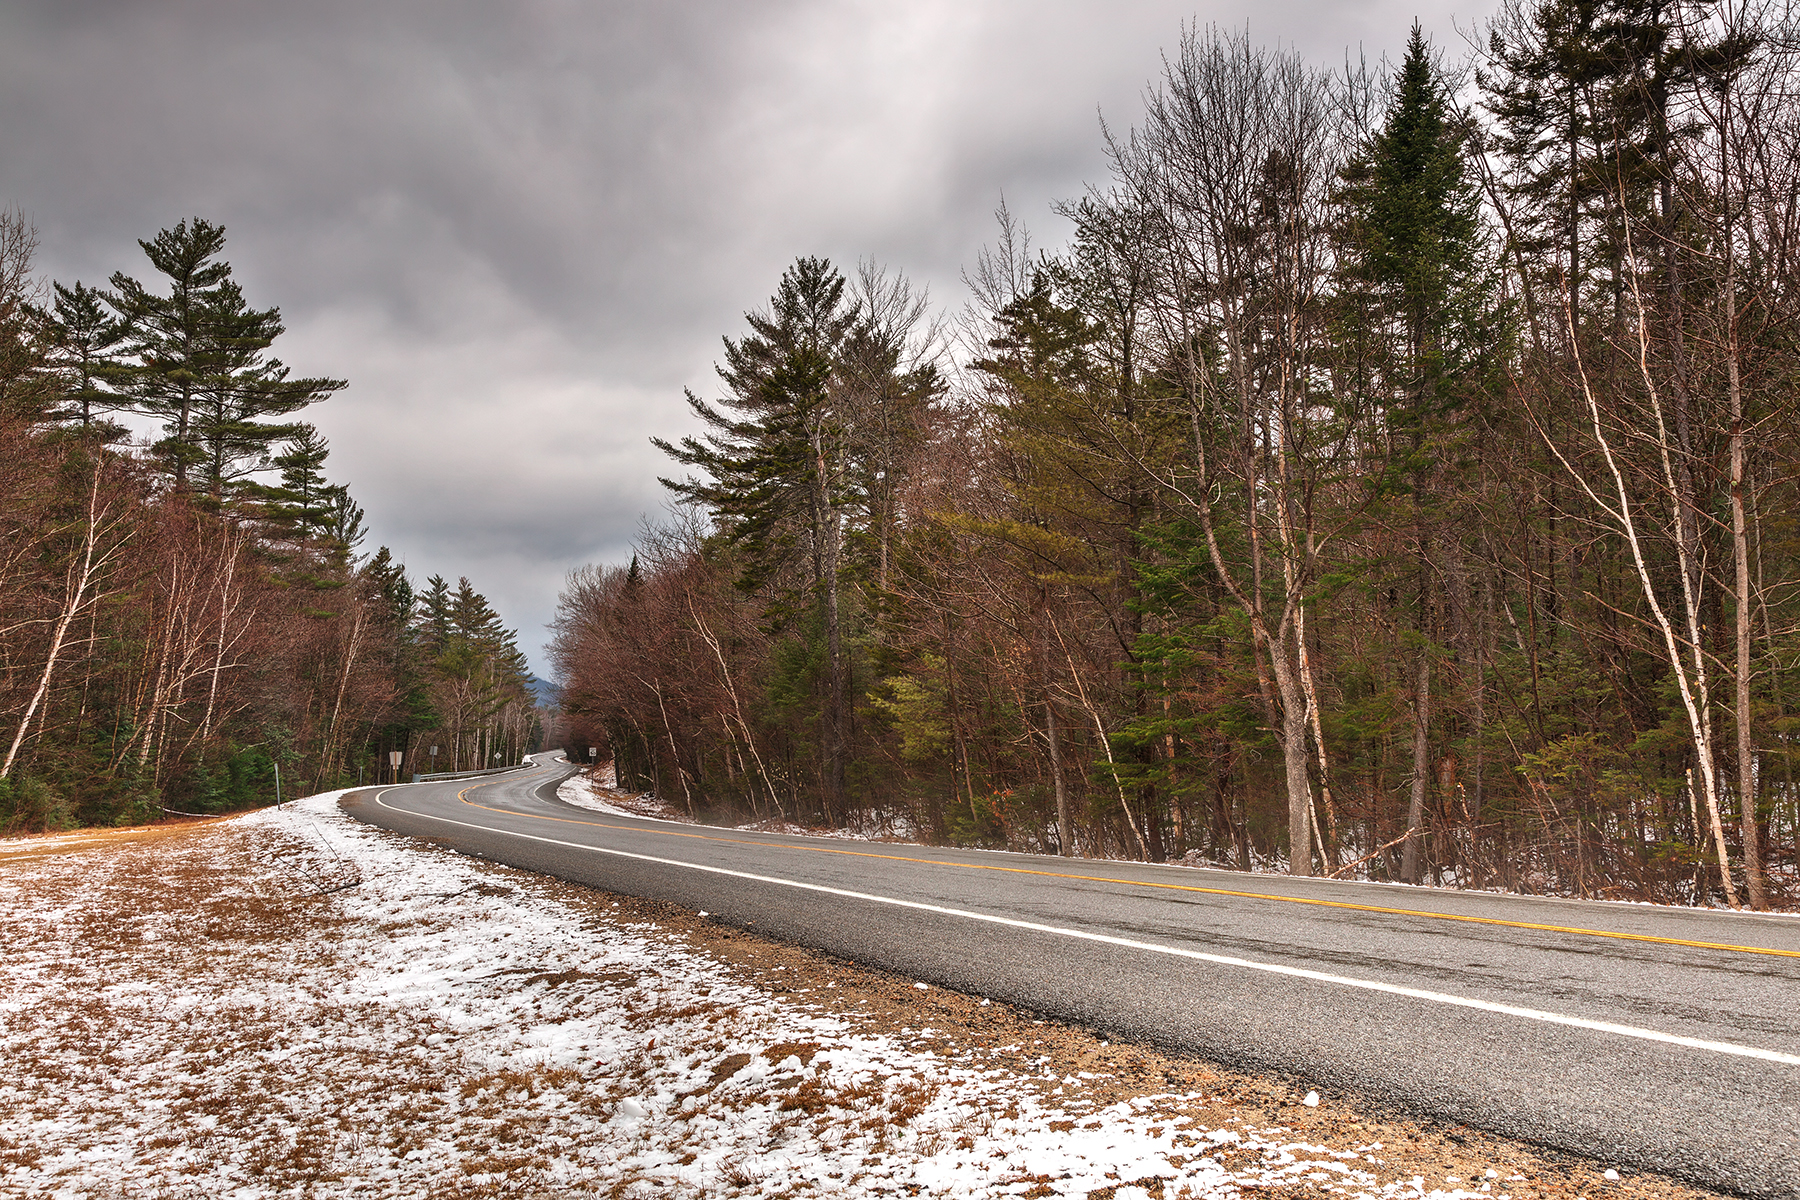 White mountain winter road - hdr photo